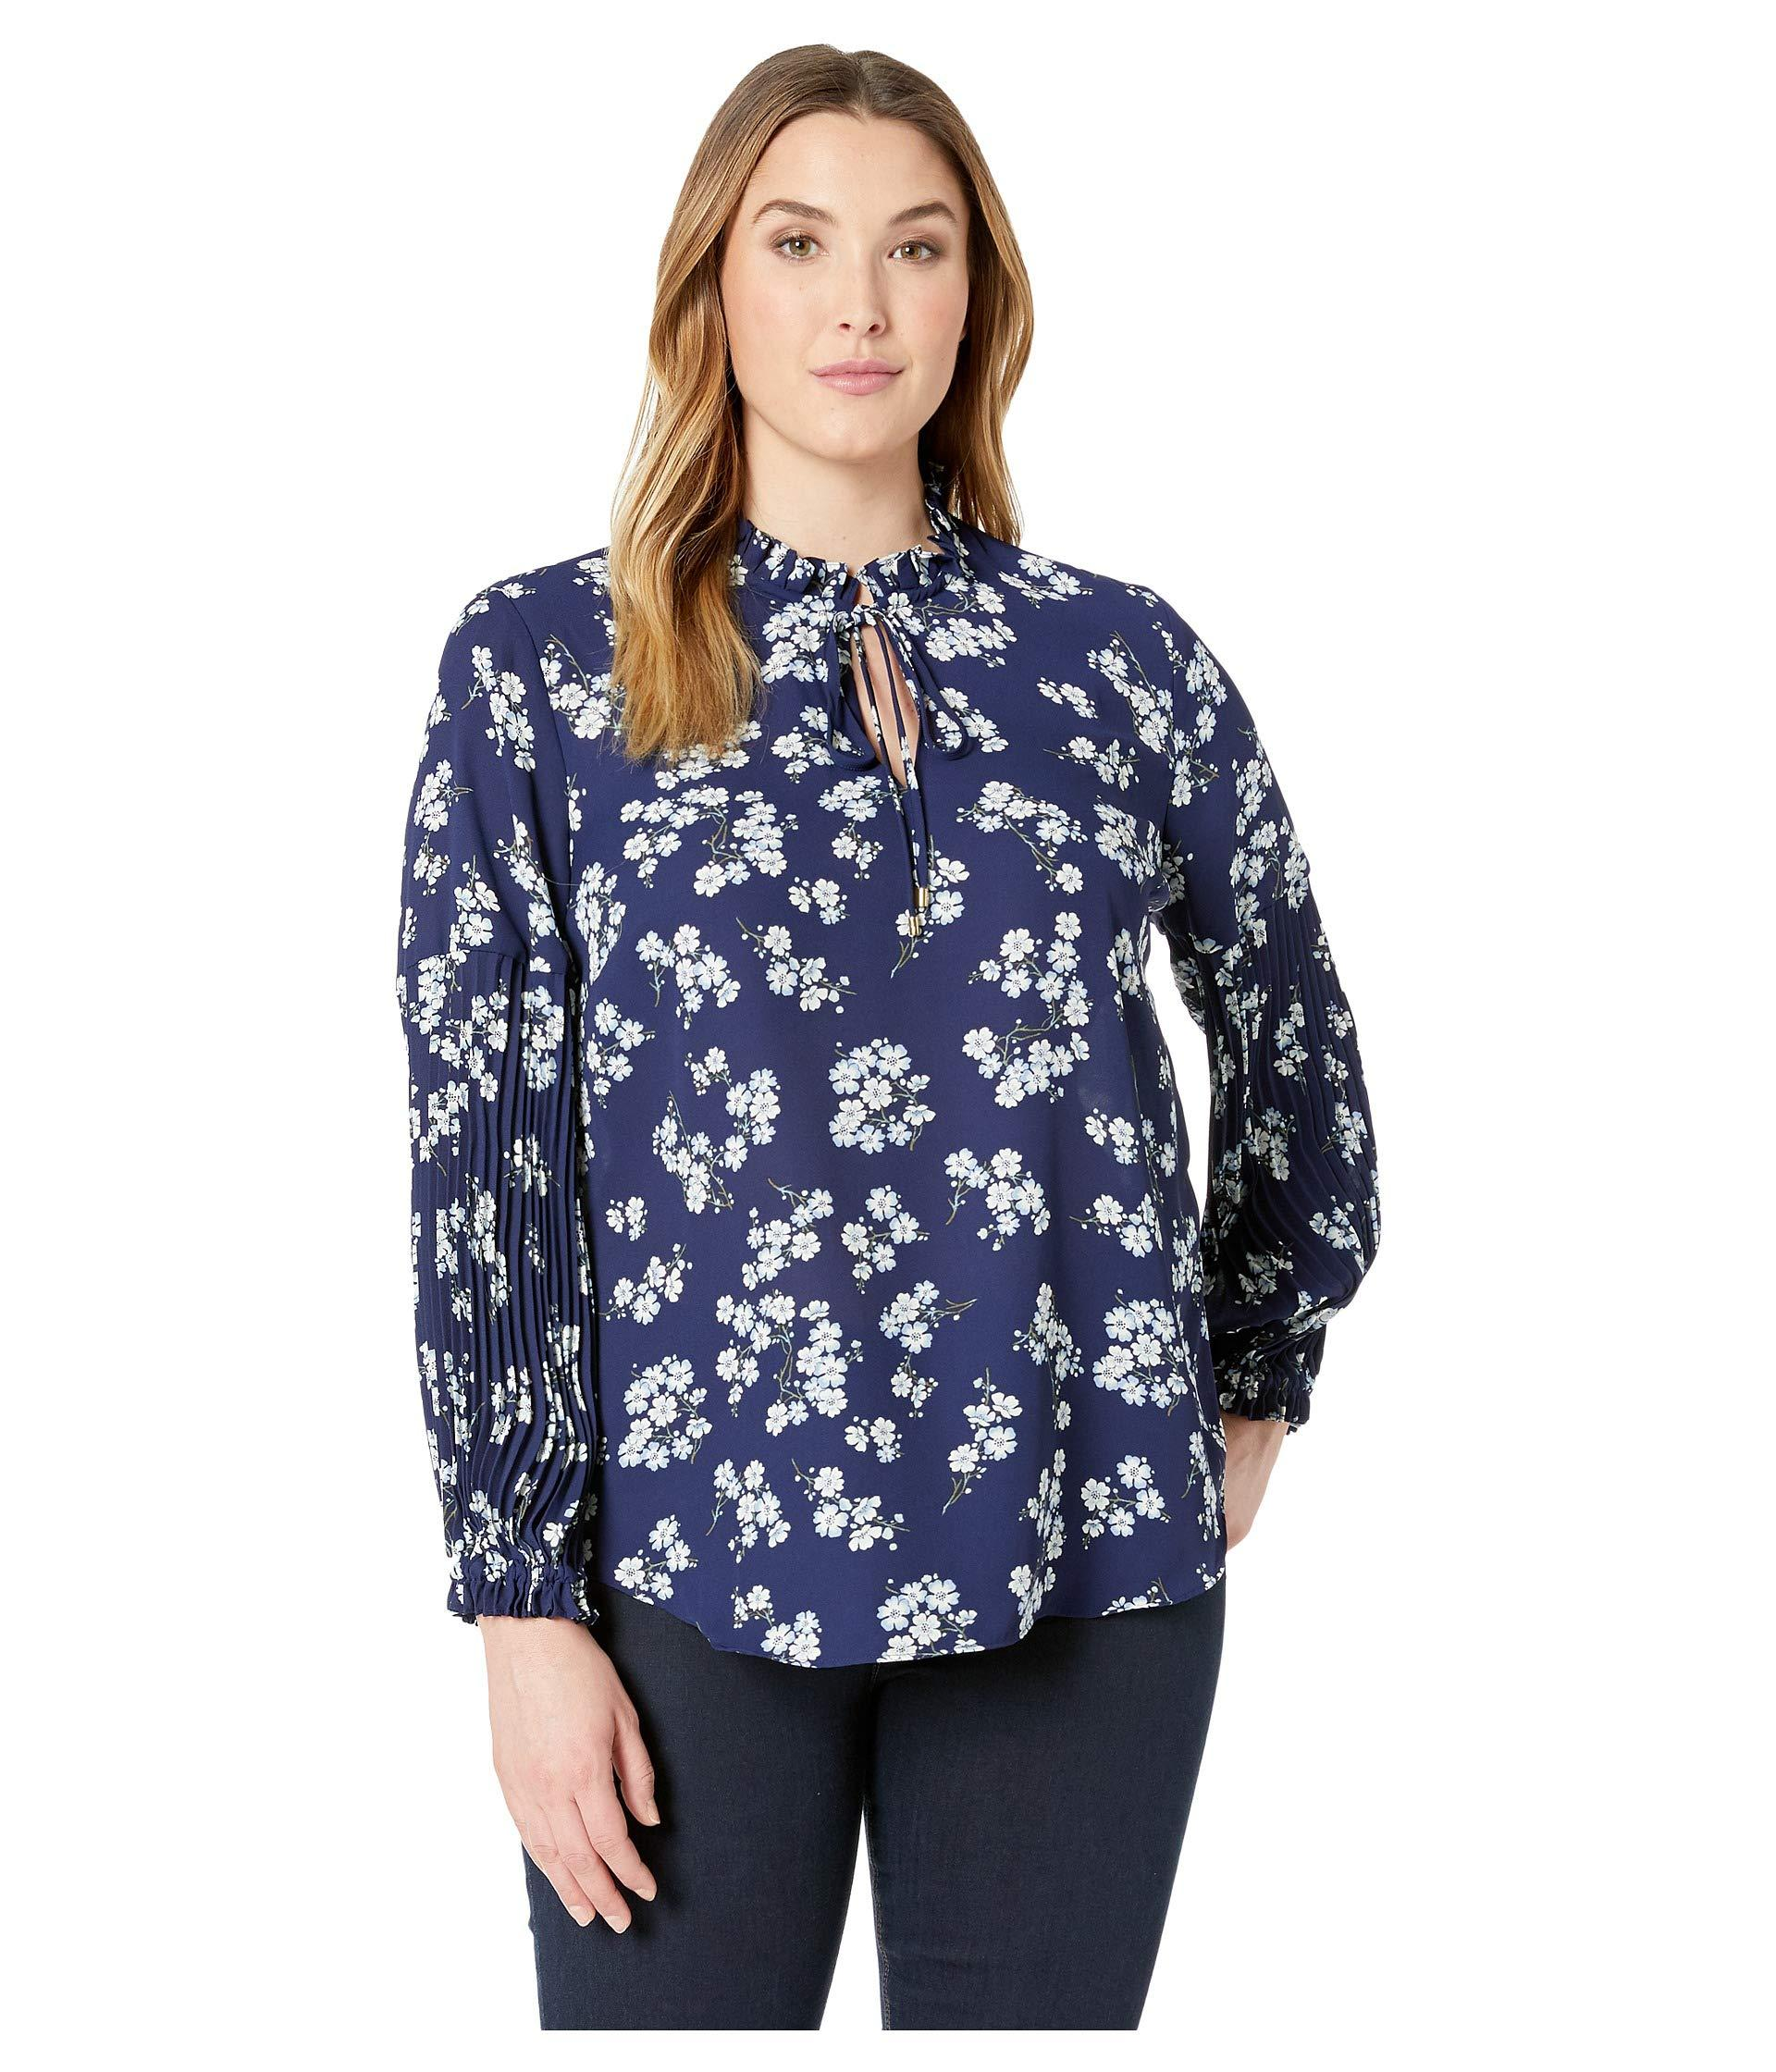 67db8f22568e7 Lauren by Ralph Lauren. Blue Plus Size Print Tie-neck Georgette Top  (twilight Royal) Women s Blouse